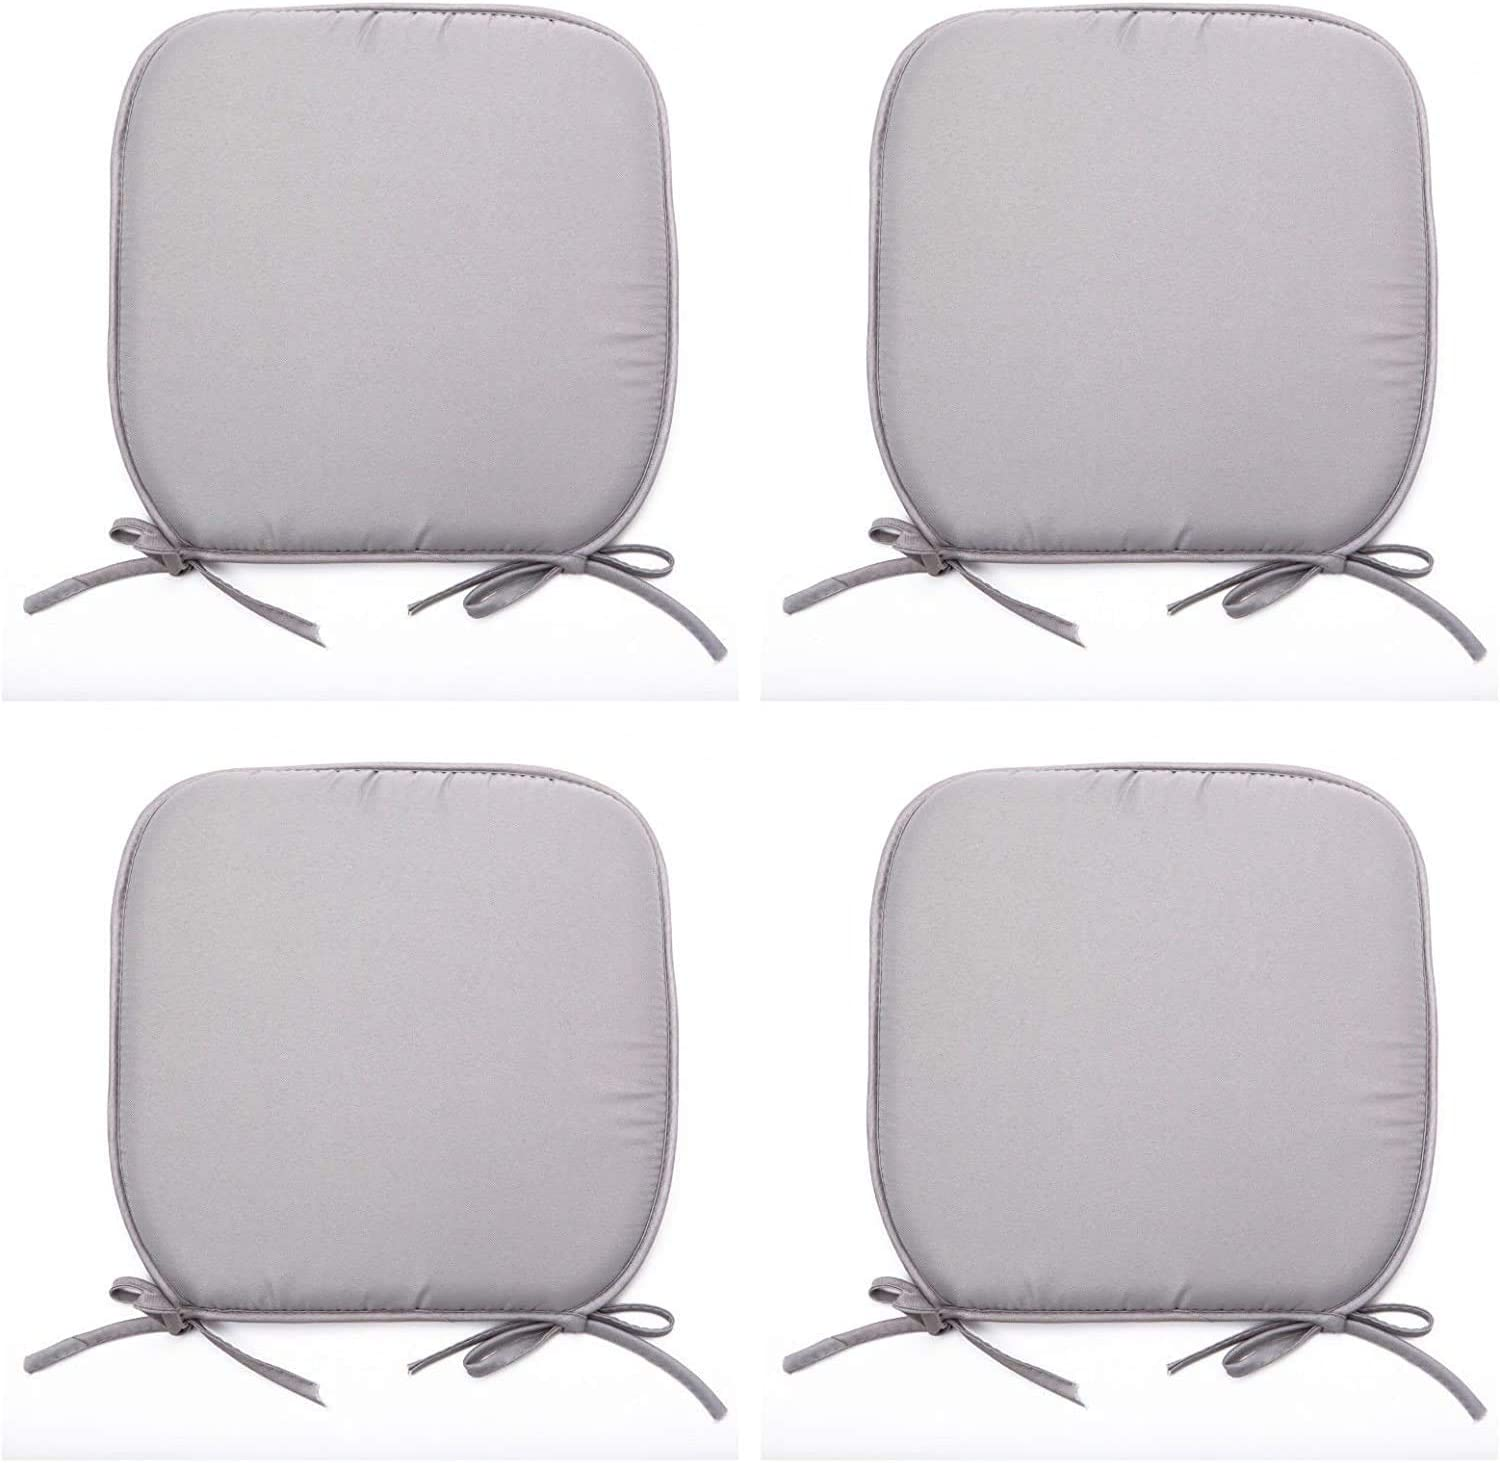 LB Garden BLUE, PACK OF 2 Dining Chair Foam Cushions Tie On Seat Pads in set of 2,4,6 or 8